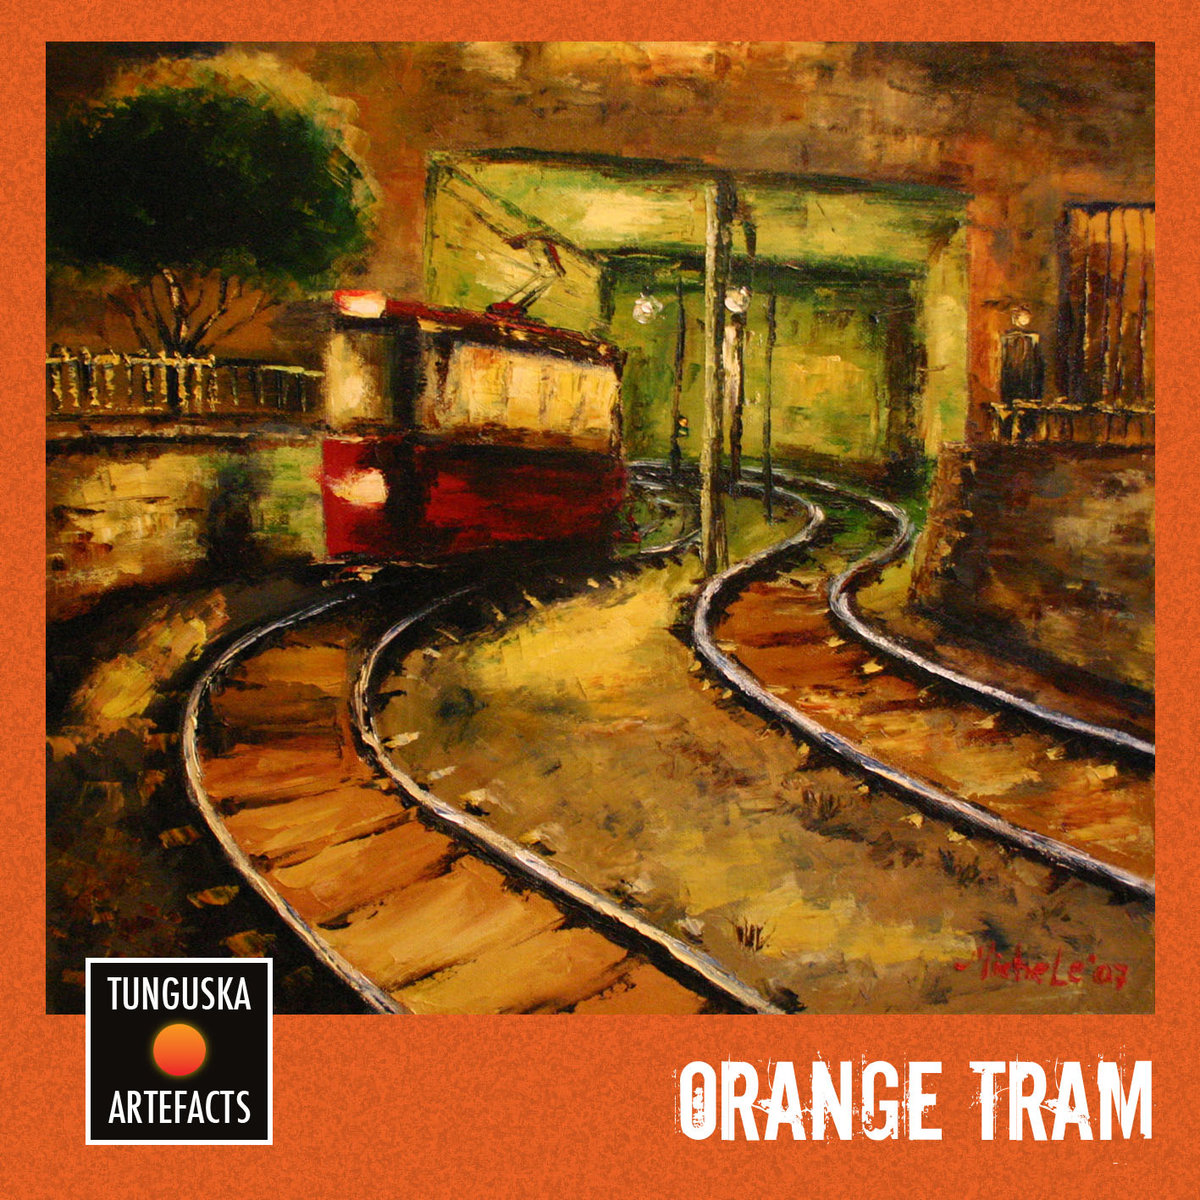 Tunguska Artefacts - Orange Tram